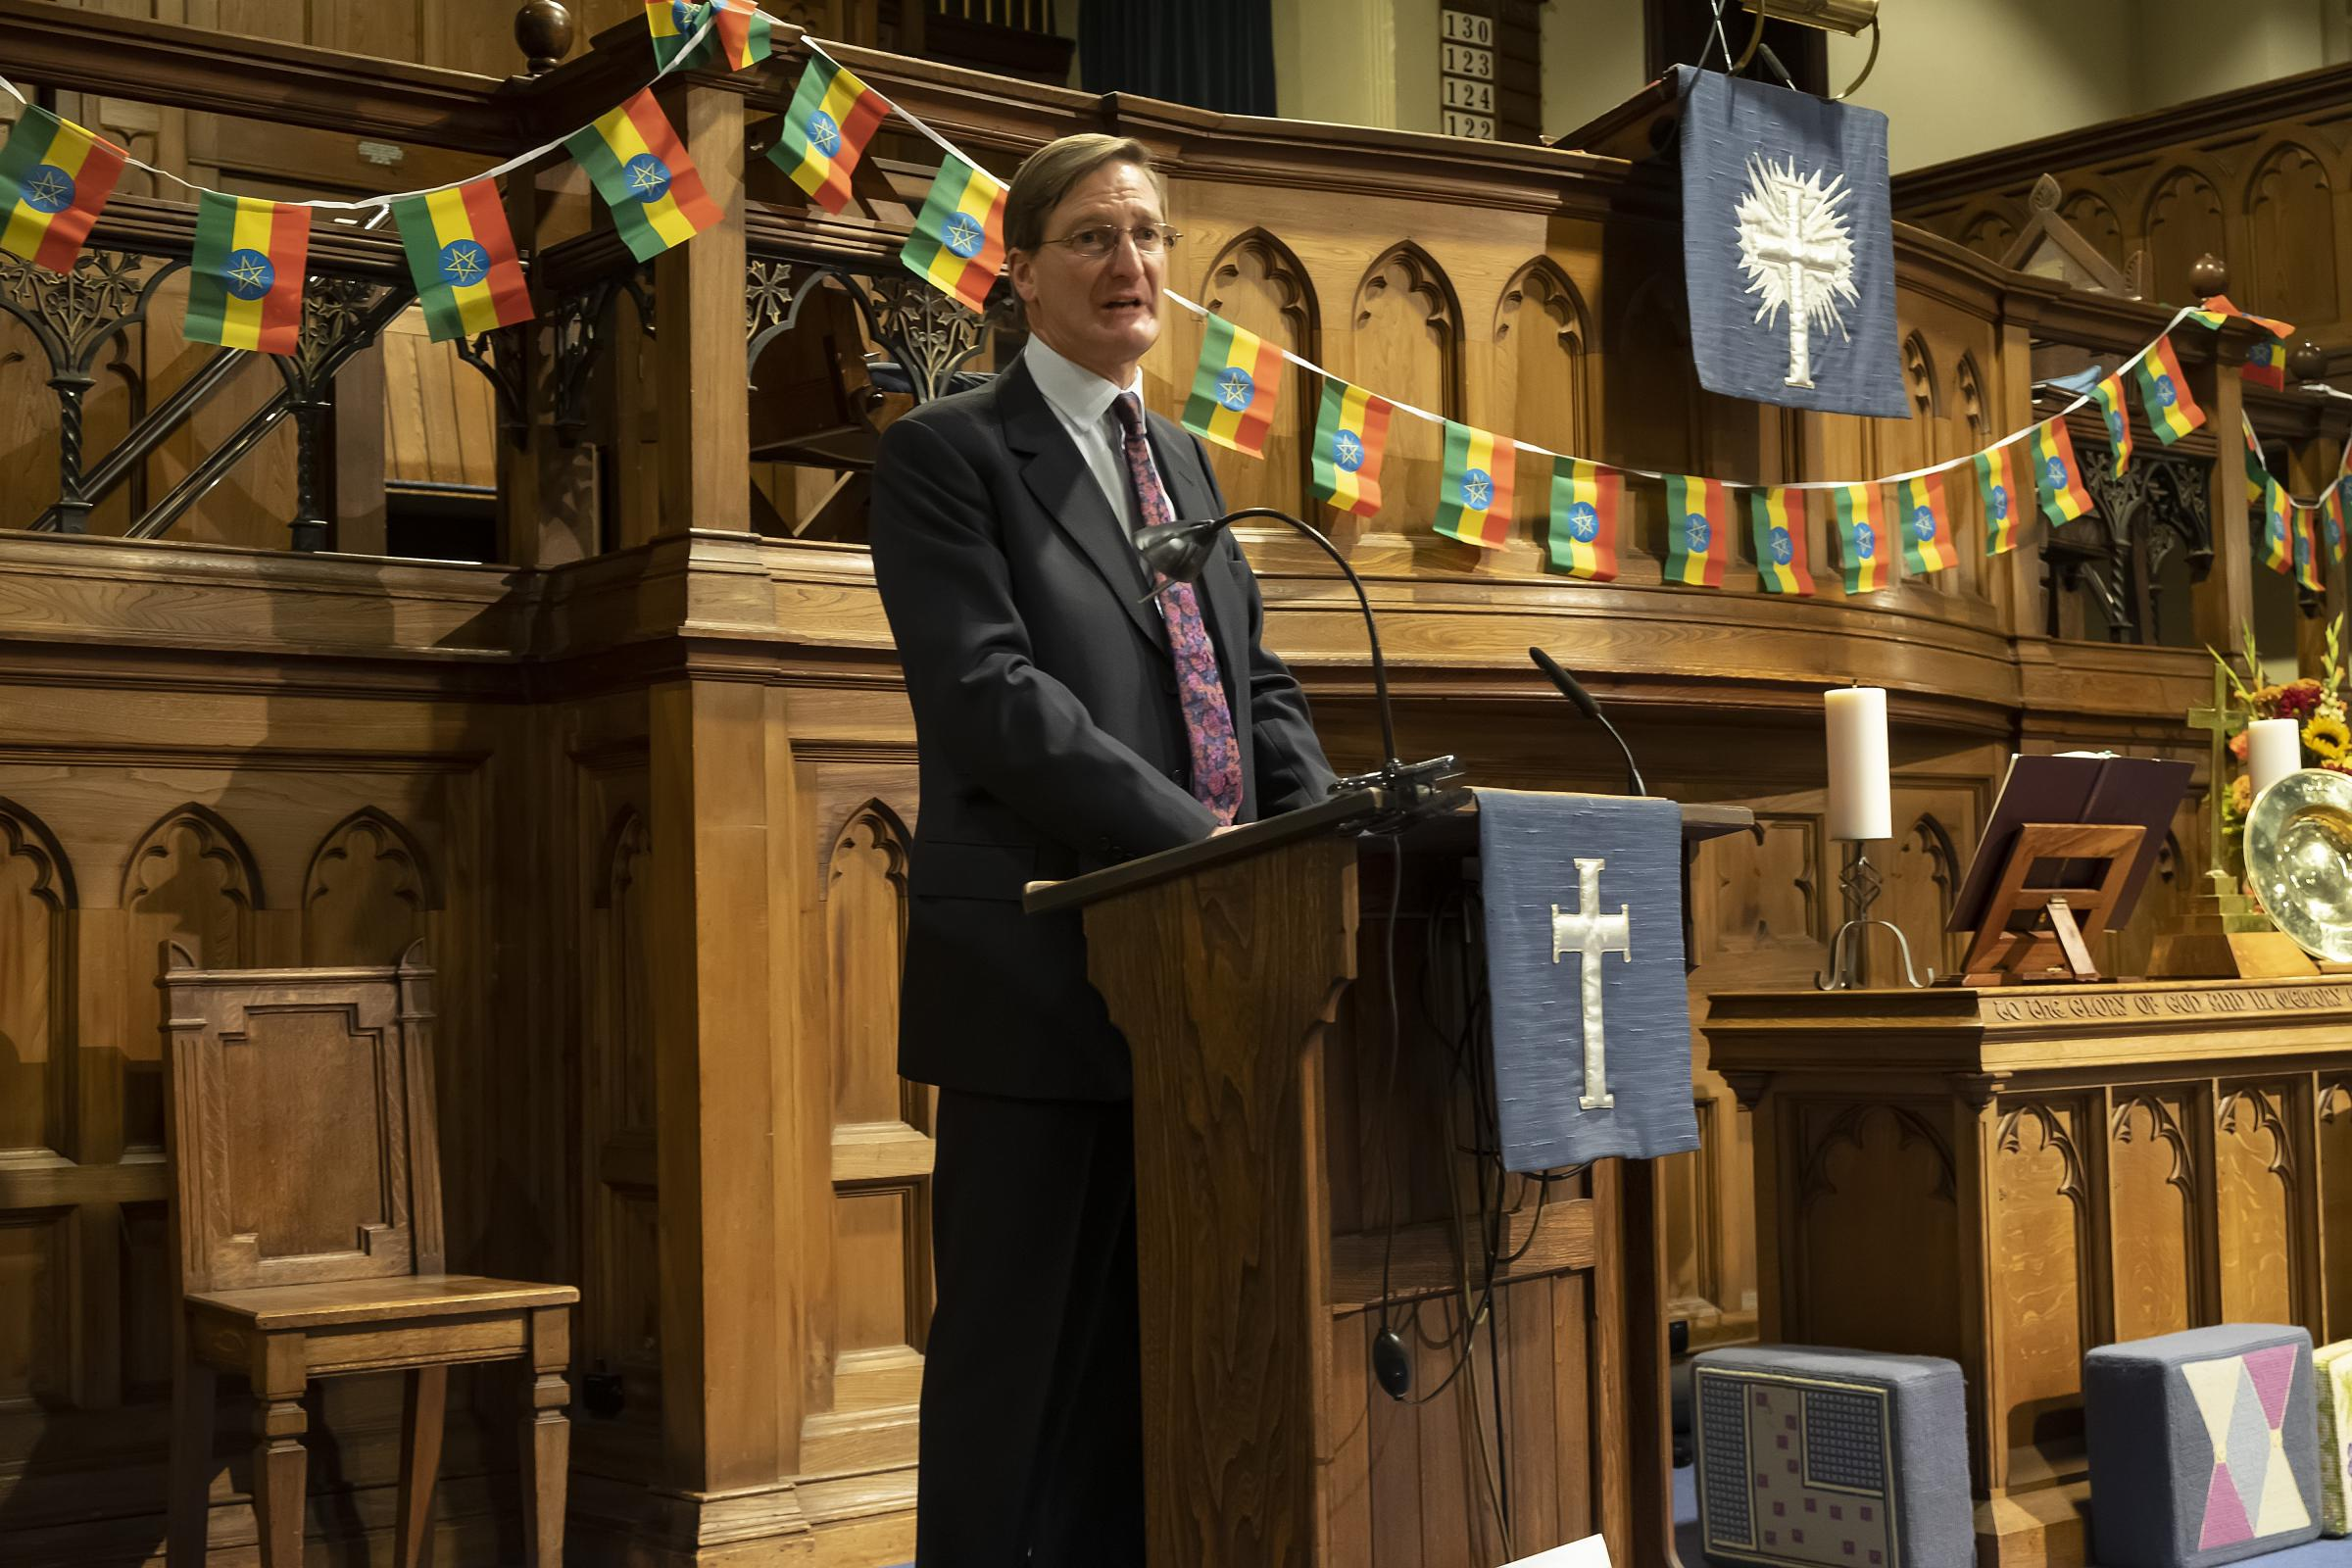 Tories may lose St Albans seat due to Brexit, says Dominic Grieve